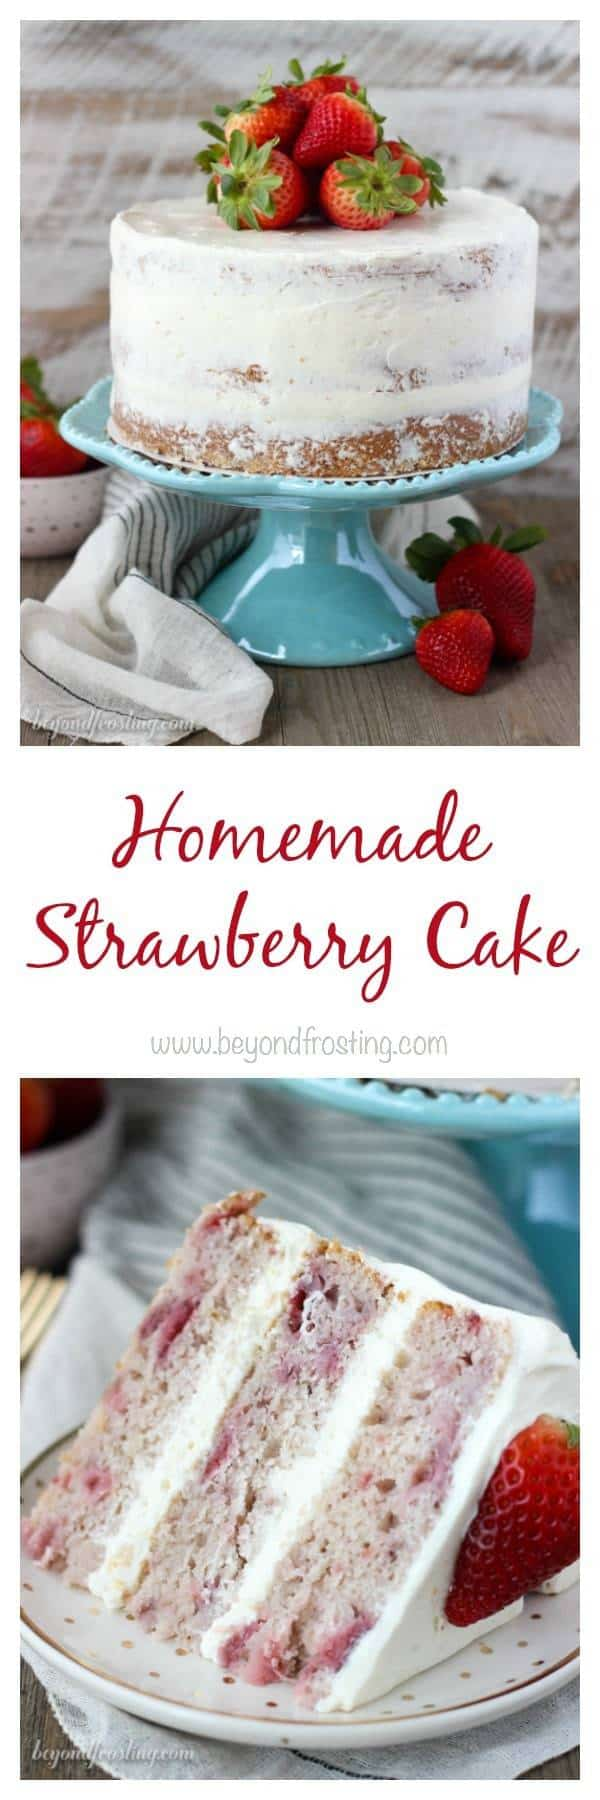 You'll love this fresh Homemade Strawberry Cake. With three different types of strawberry flavors, this is the ultimate spring cake! It's filled with a lemon Swiss Meringue Buttercream.